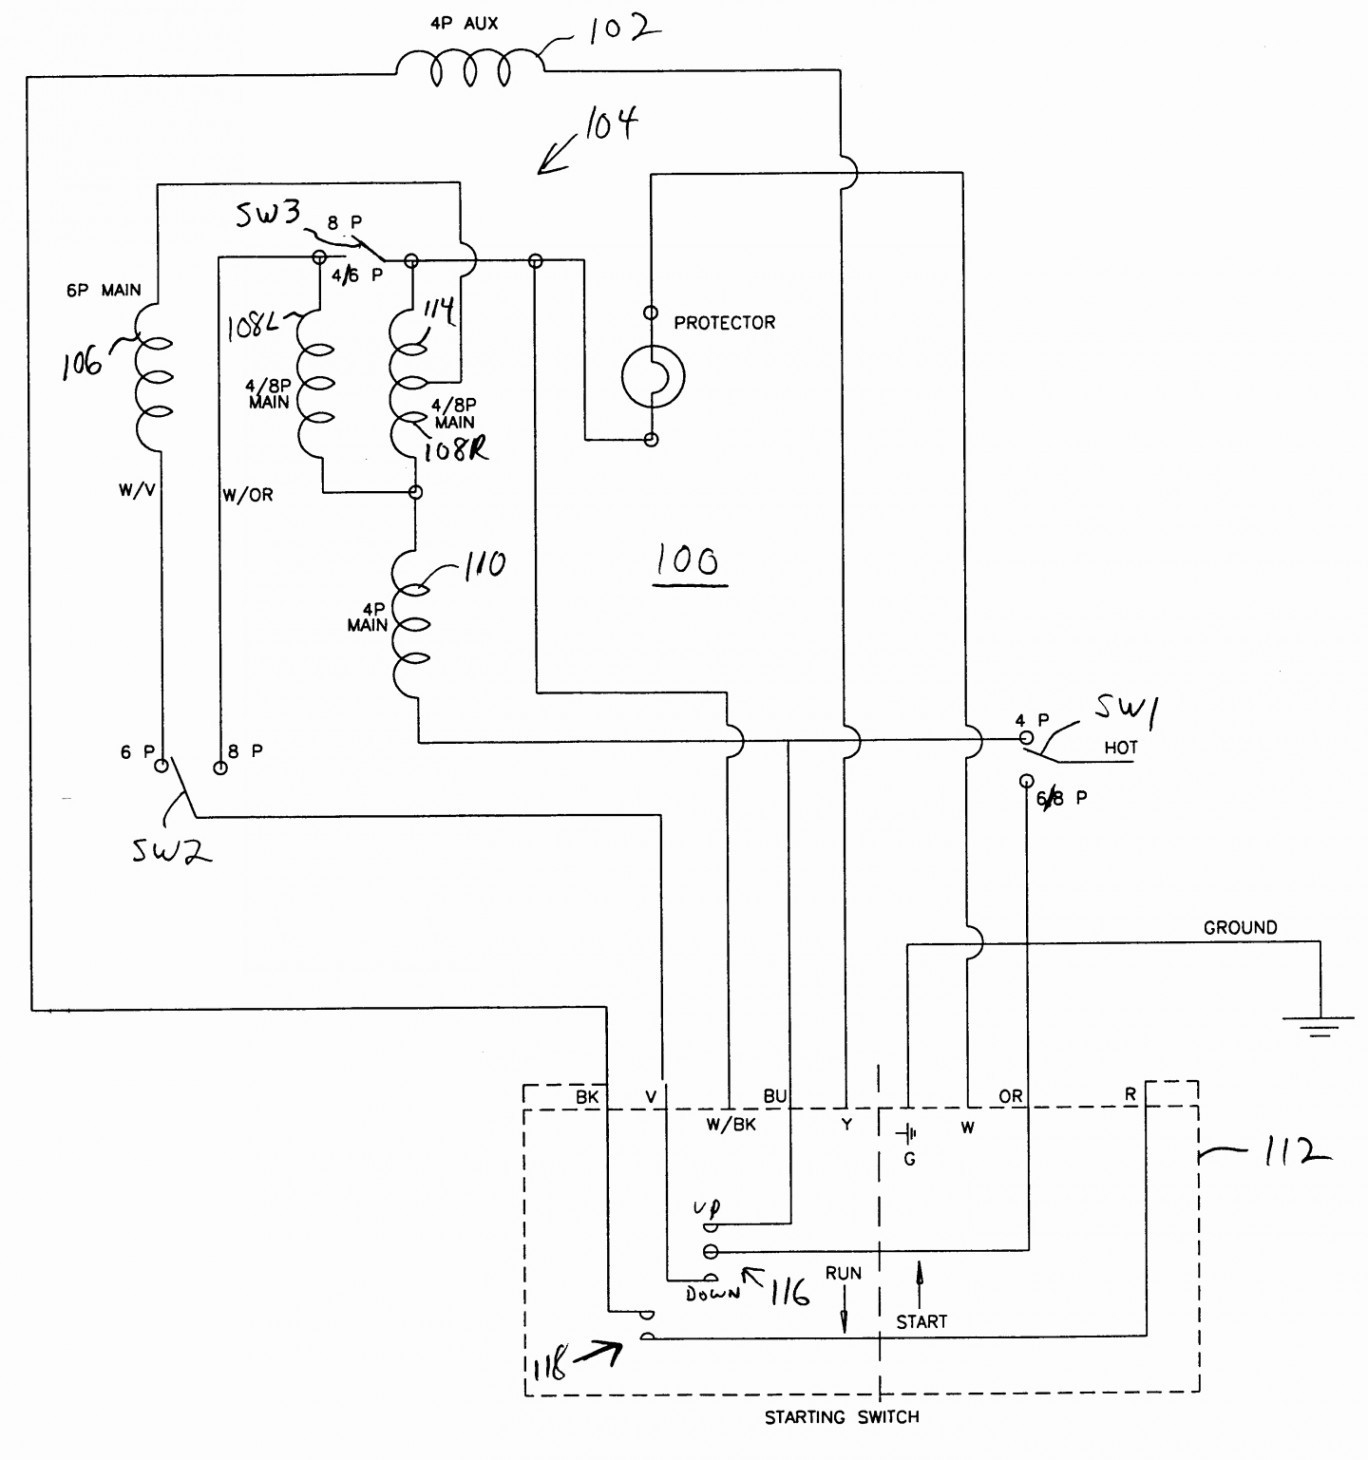 Century Ac Motor Wiring Diagram 115 230 Volts | Manual E-Books - Century Ac Motor Wiring Diagram 115 230 Volts